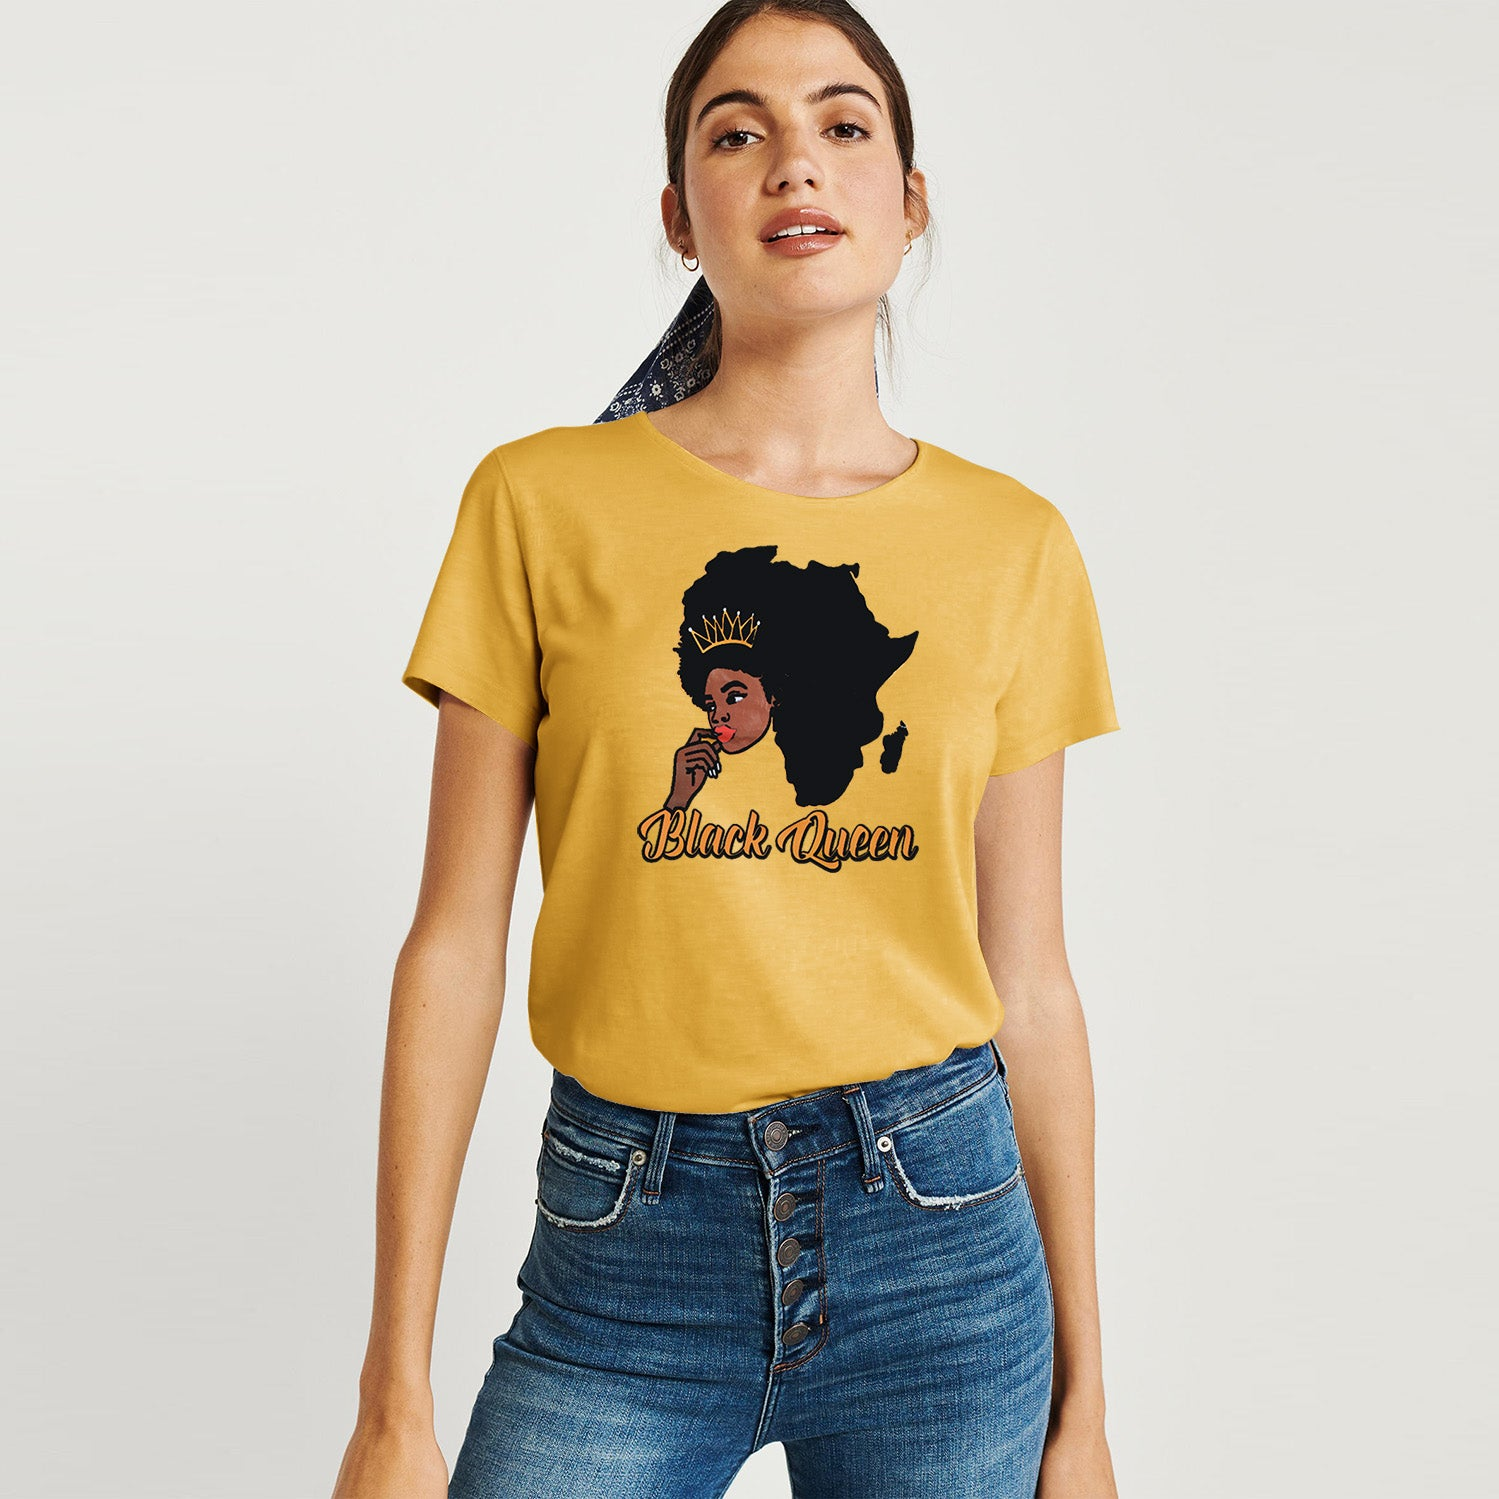 Here Kitty Single Jersey Crew Neck Tee Shirt For Women-Yellow-BE9648